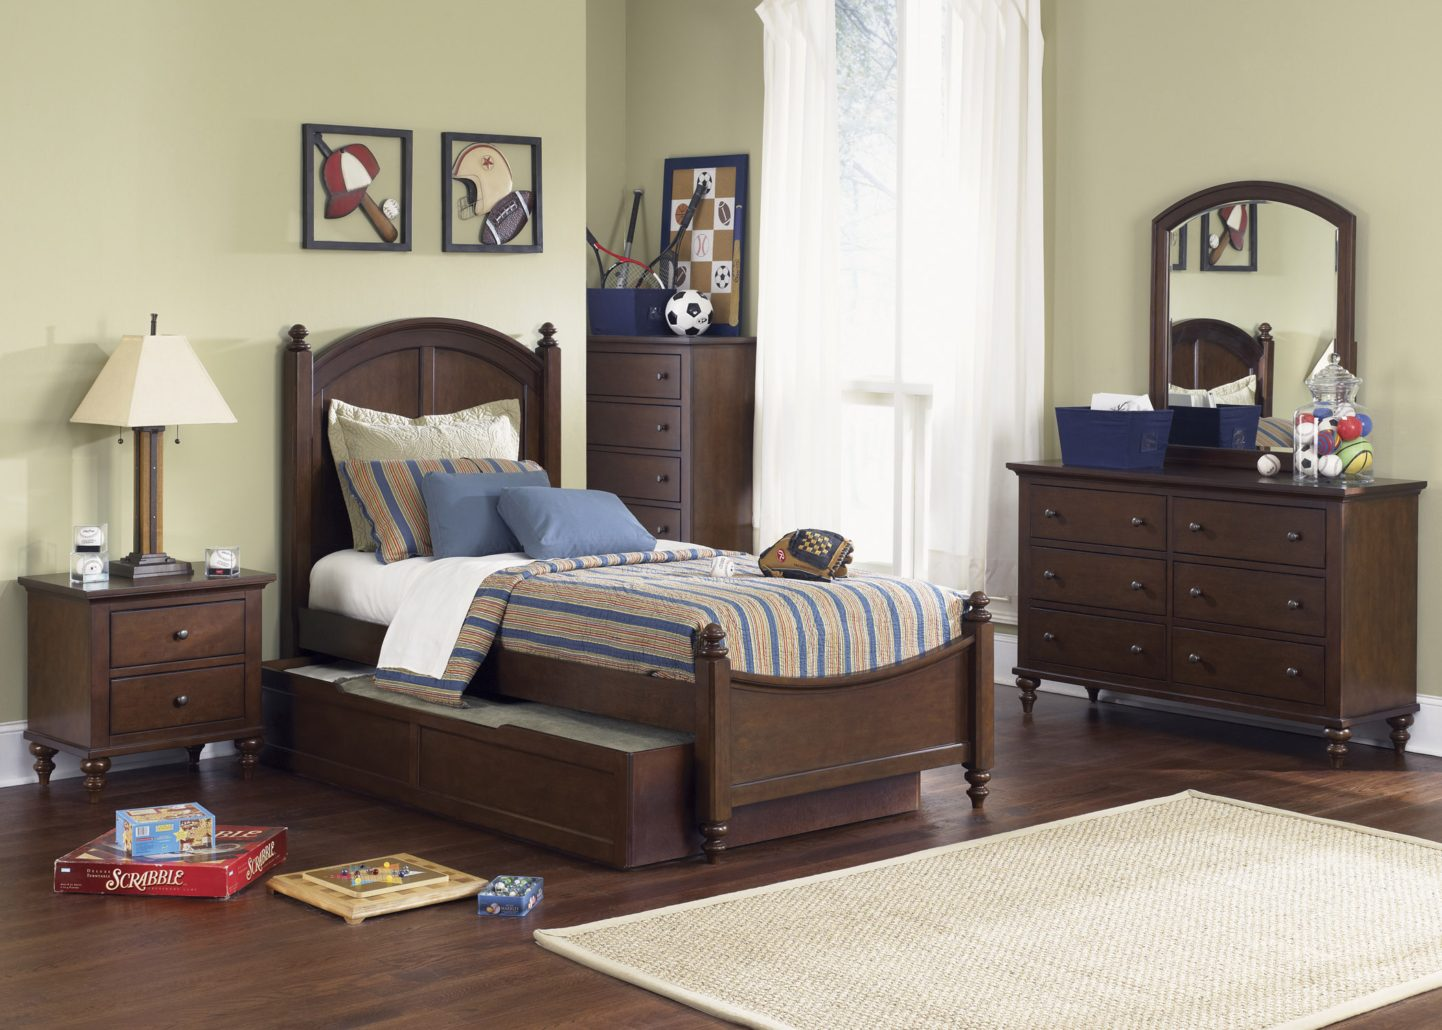 Bedroom Furniture Youth youth bedroom | unique furniture